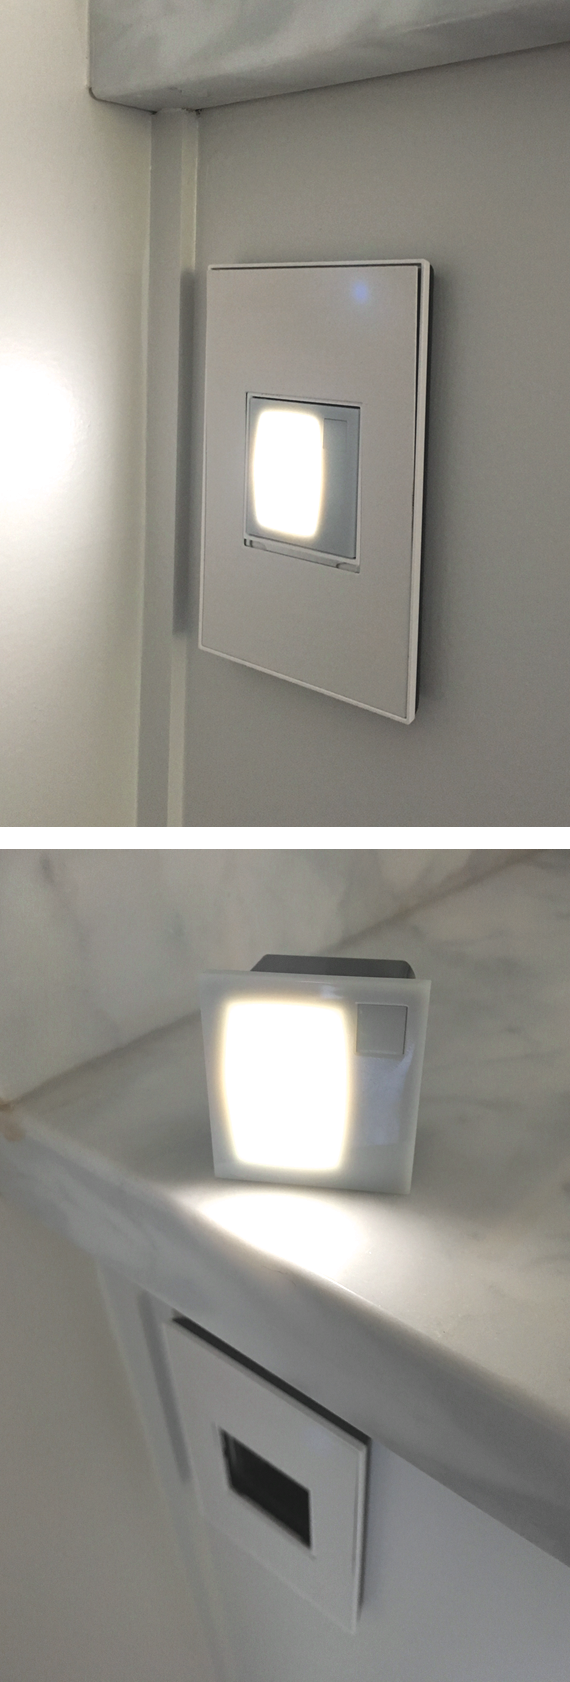 adorne nightlight + flashlight // @simplifiedbee #oneroomchallenge